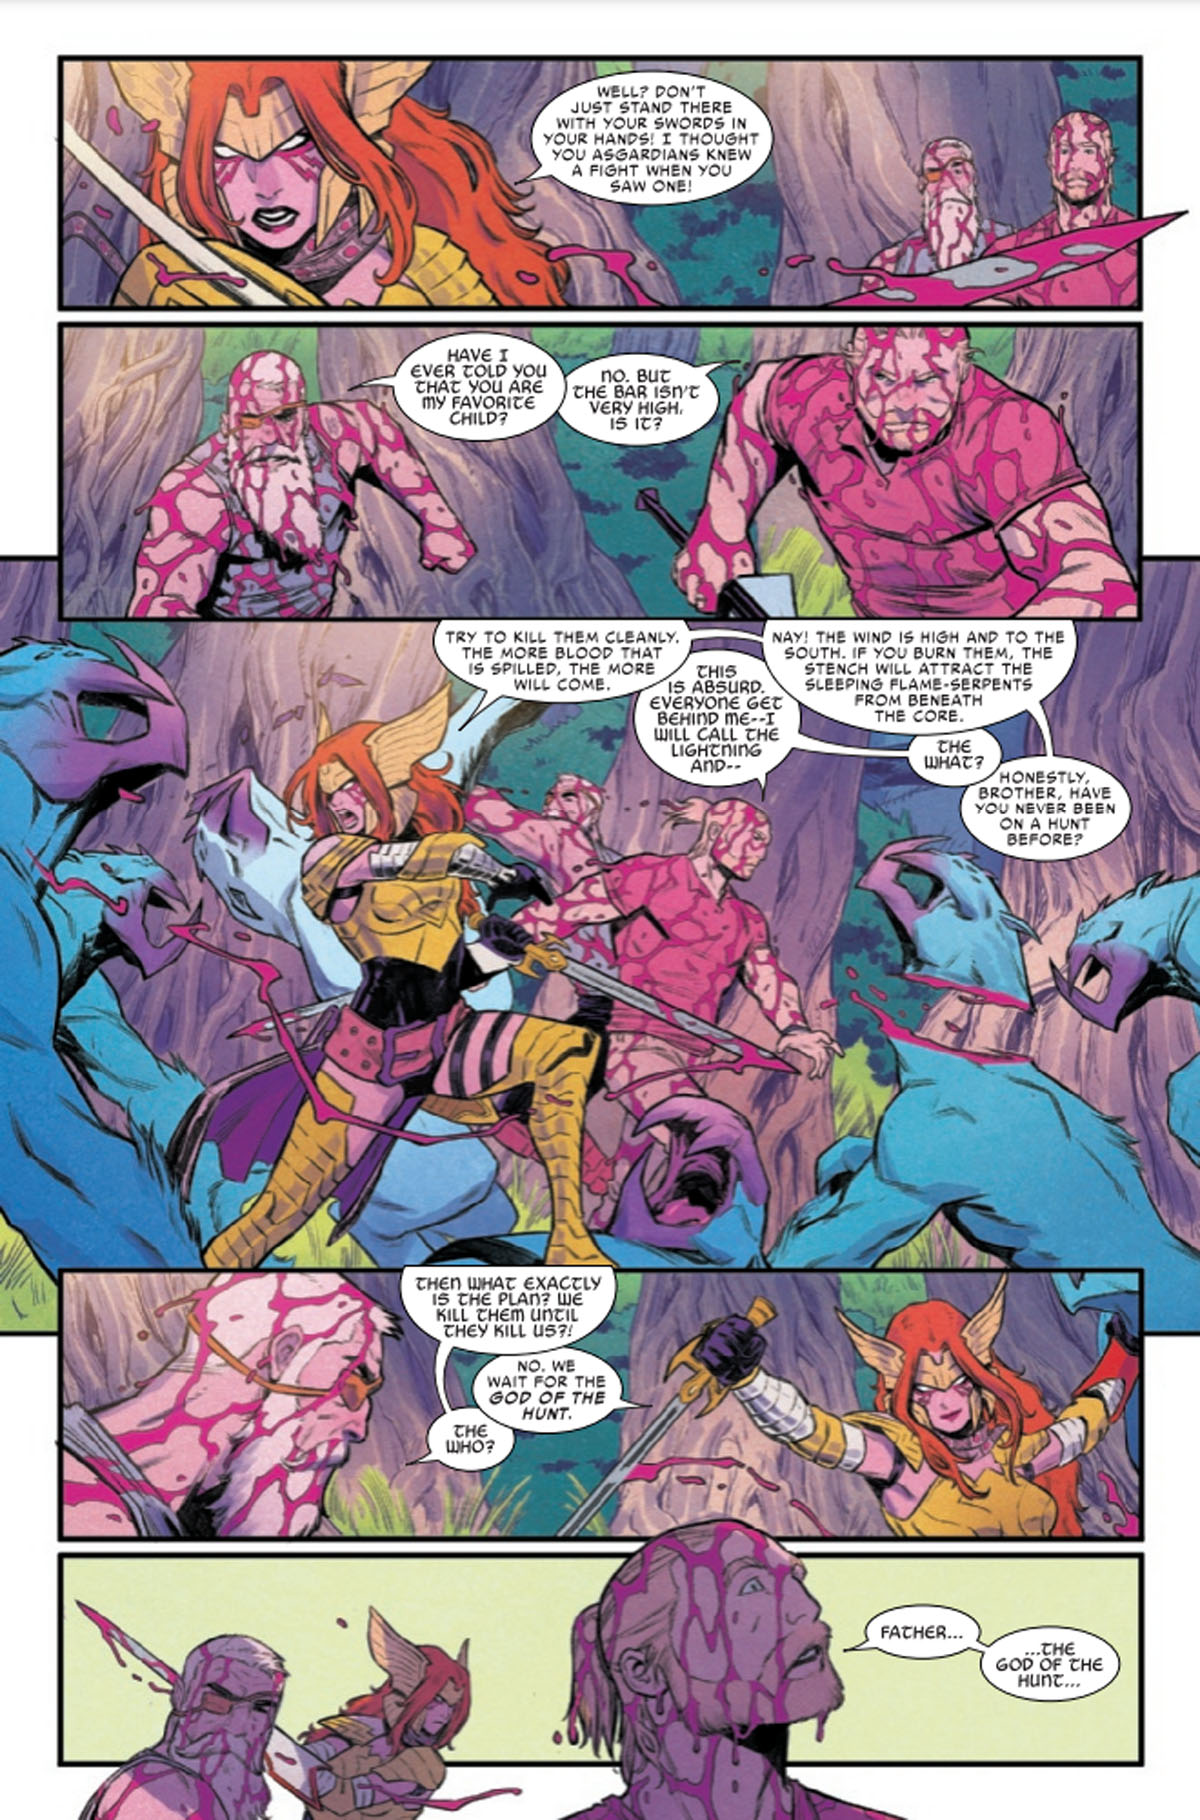 Thor #17 page 3